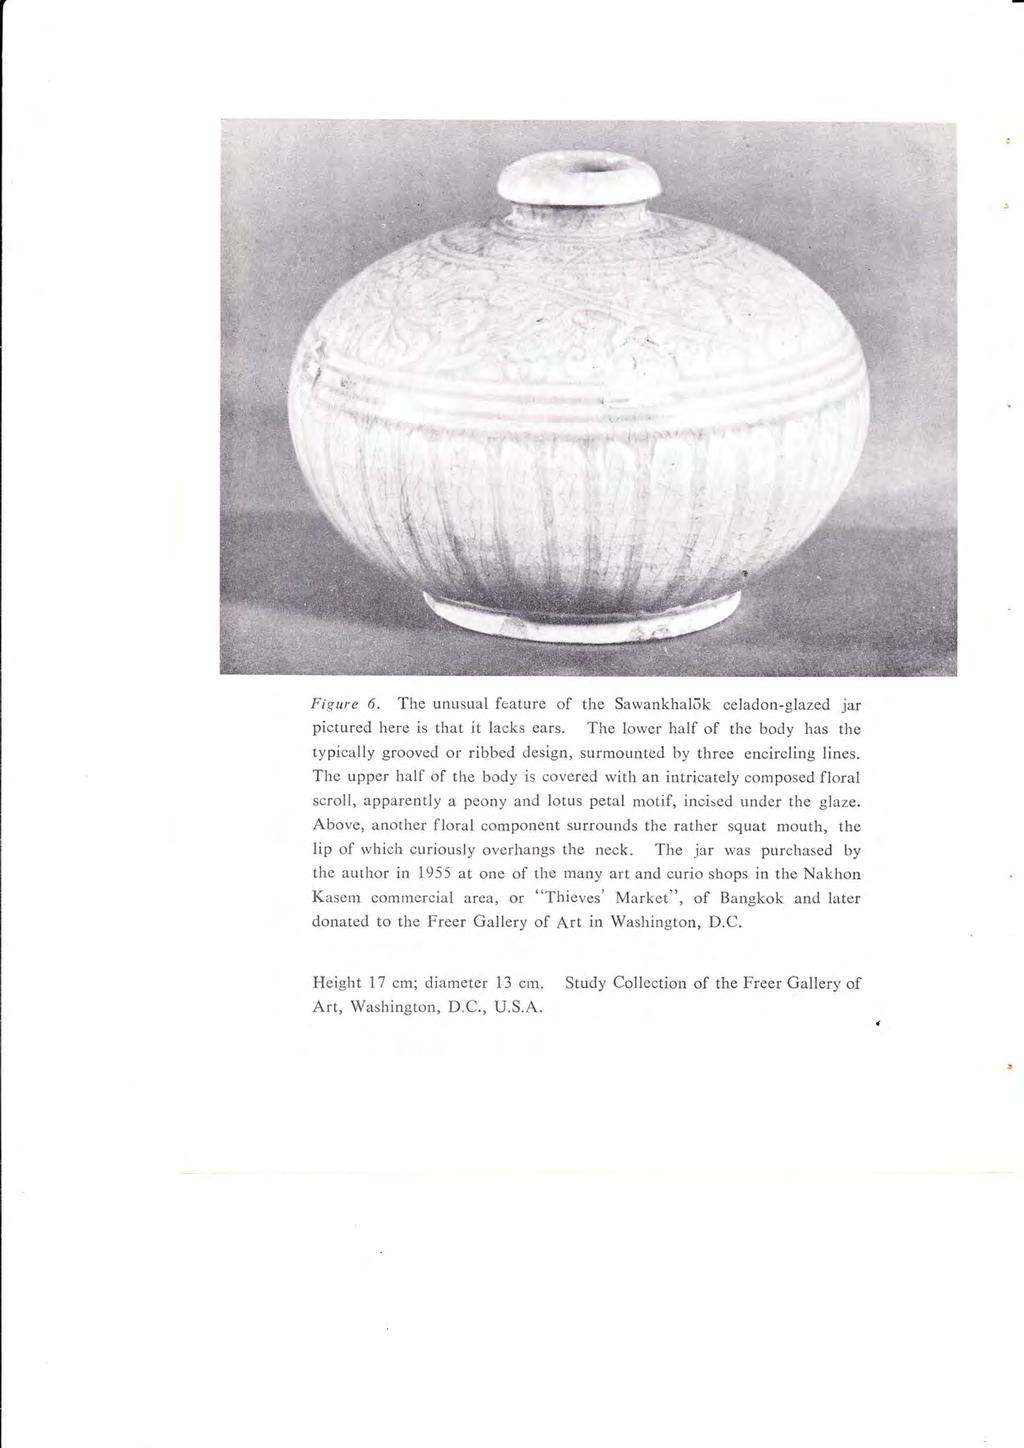 Figure 6. The unusual feature of the Sawankhalok celadon-glazed jar pictured here is that it lacks ears.